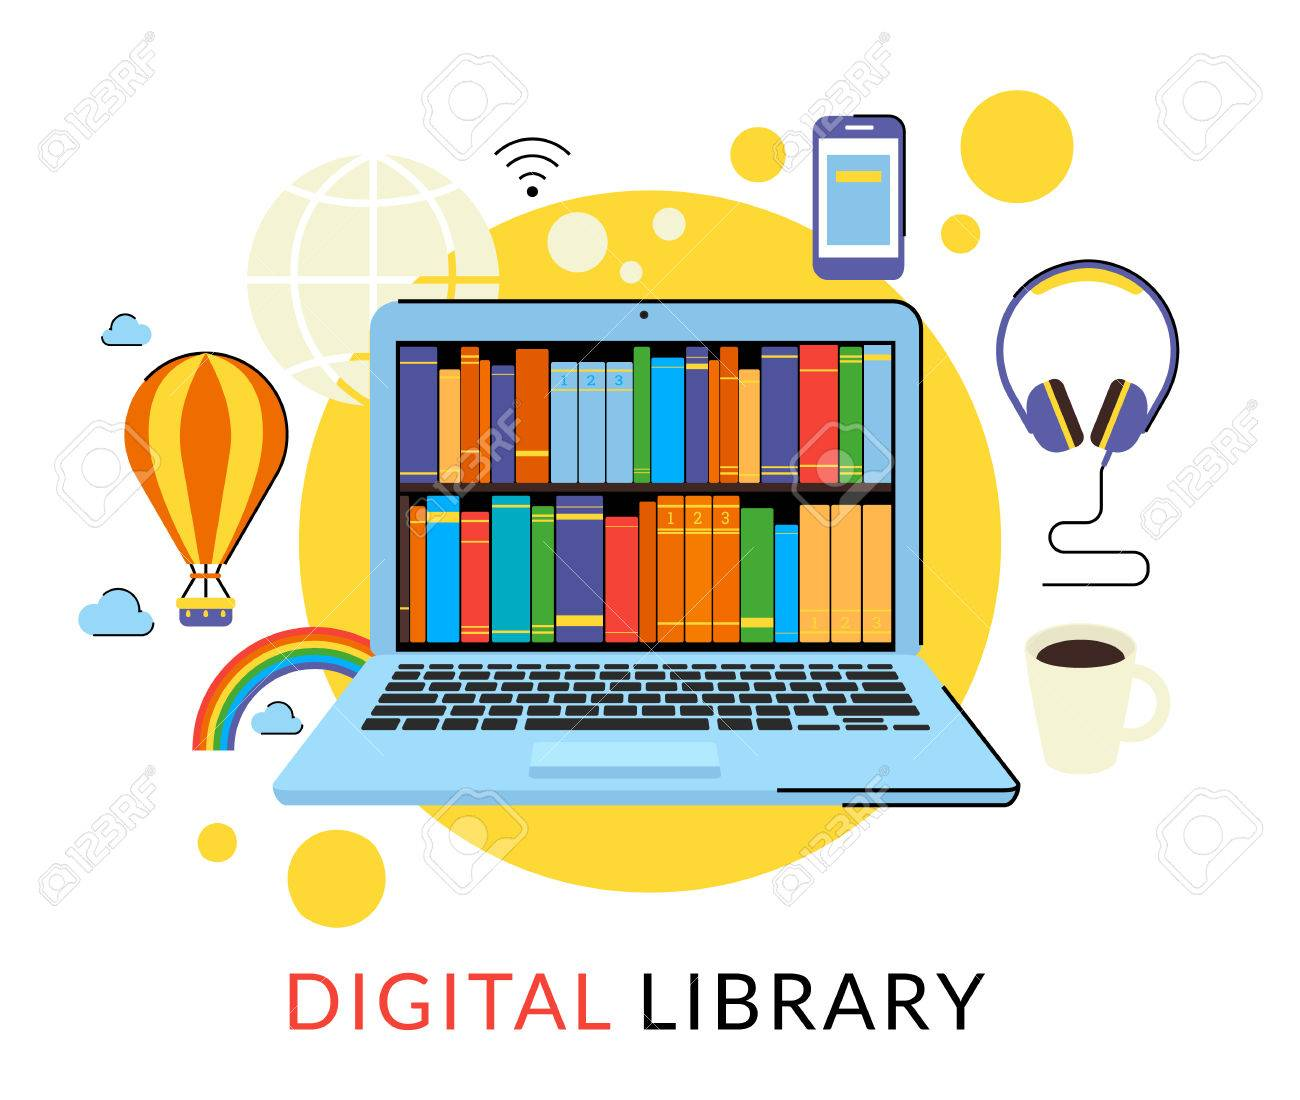 Flat Contour Illustration Of Laptop With Digital Library In The.. Royalty  Free Cliparts, Vectors, And Stock Illustration. Image 44228691.